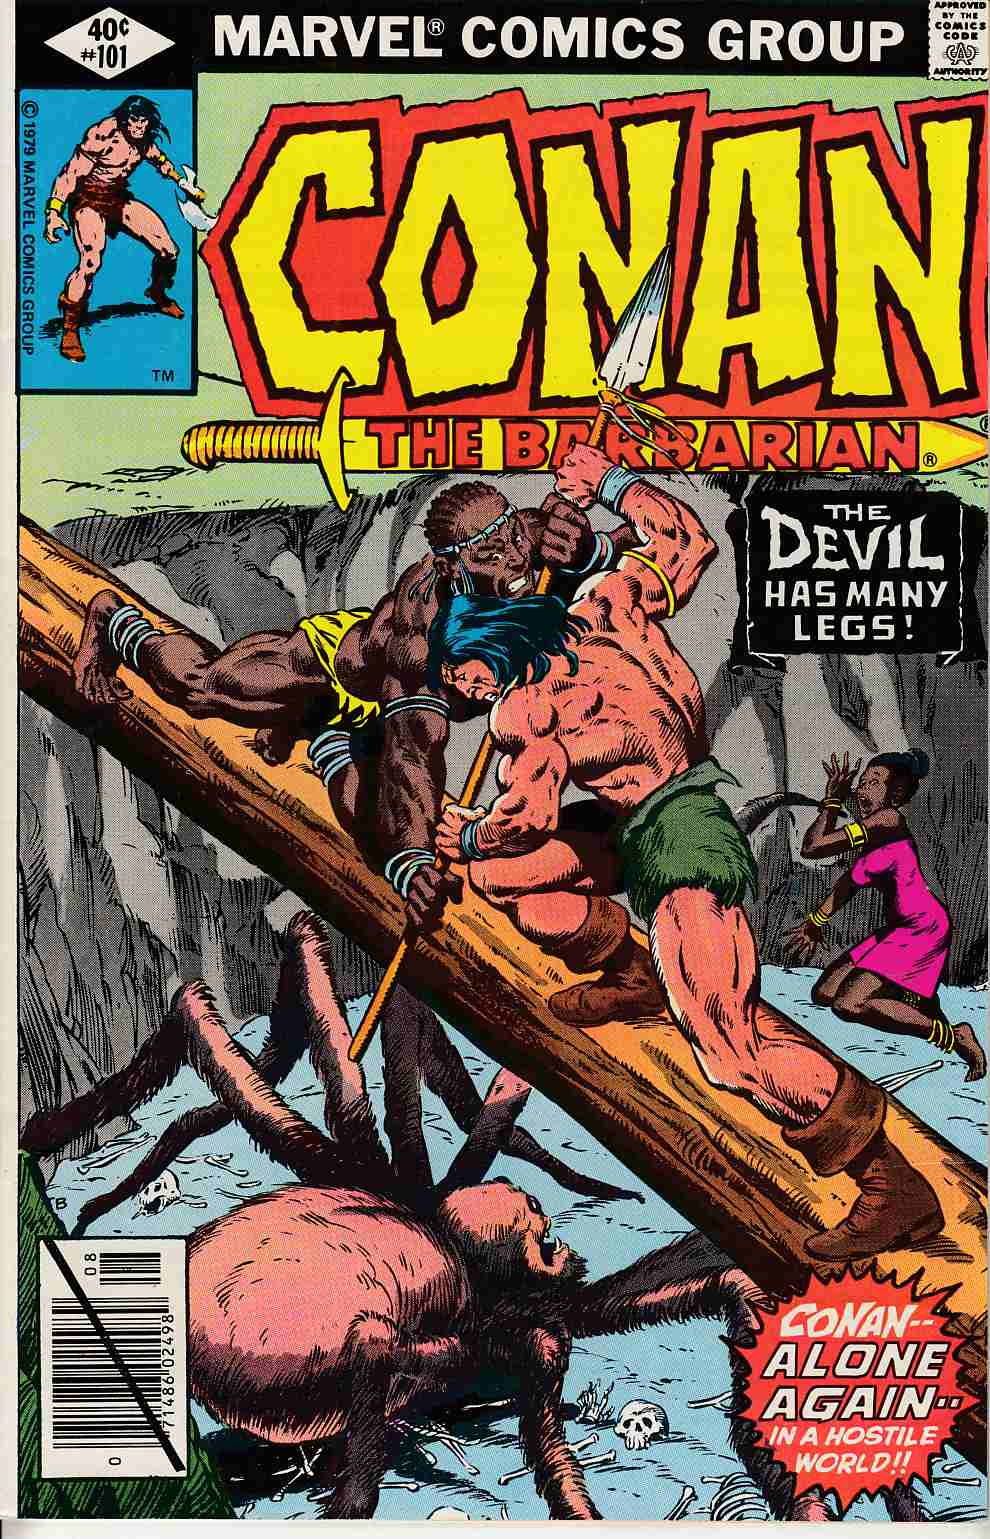 Conan the Barbarian #101 Very Fine (8.0) [Marvel Comic] LARGE